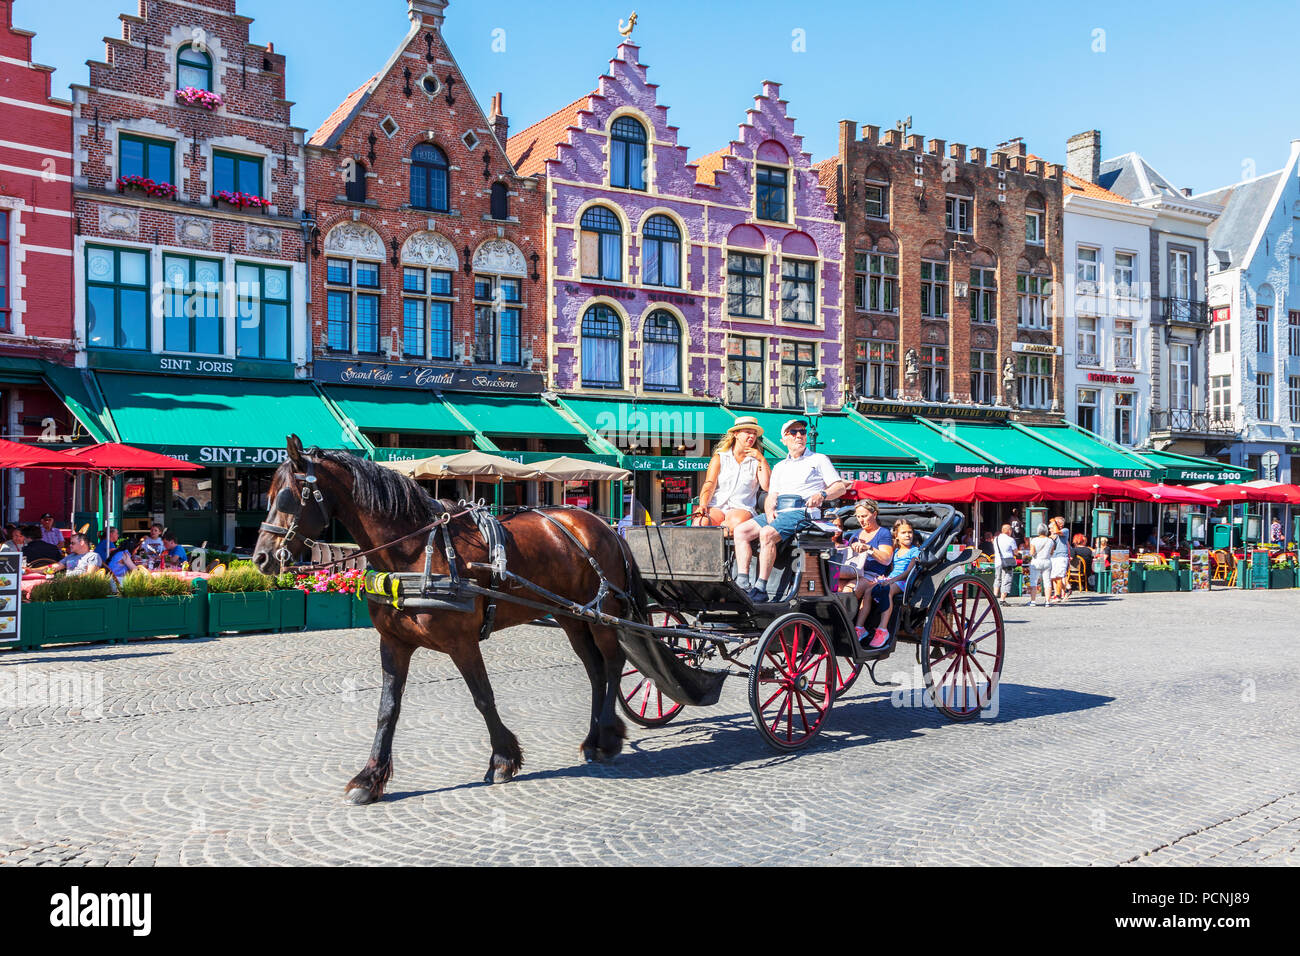 Tourists being taken on city tour with a horse and trap in the Markt Square, Bruges - Stock Image